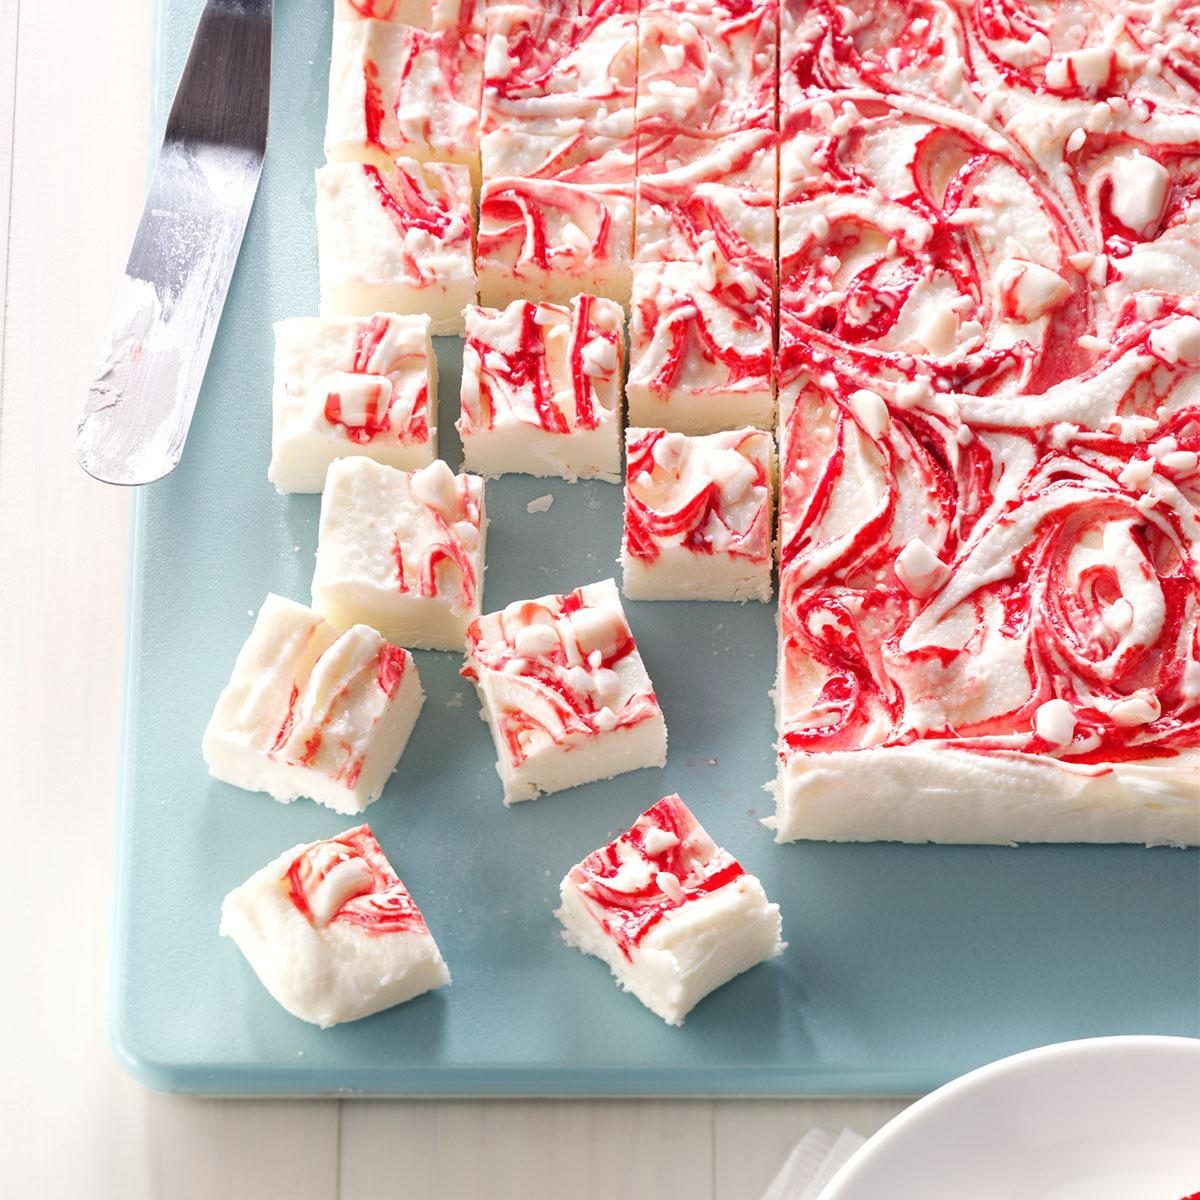 Great Christmas Gifts To Make: 19 Christmas Fudge Recipes That Make Great Gifts